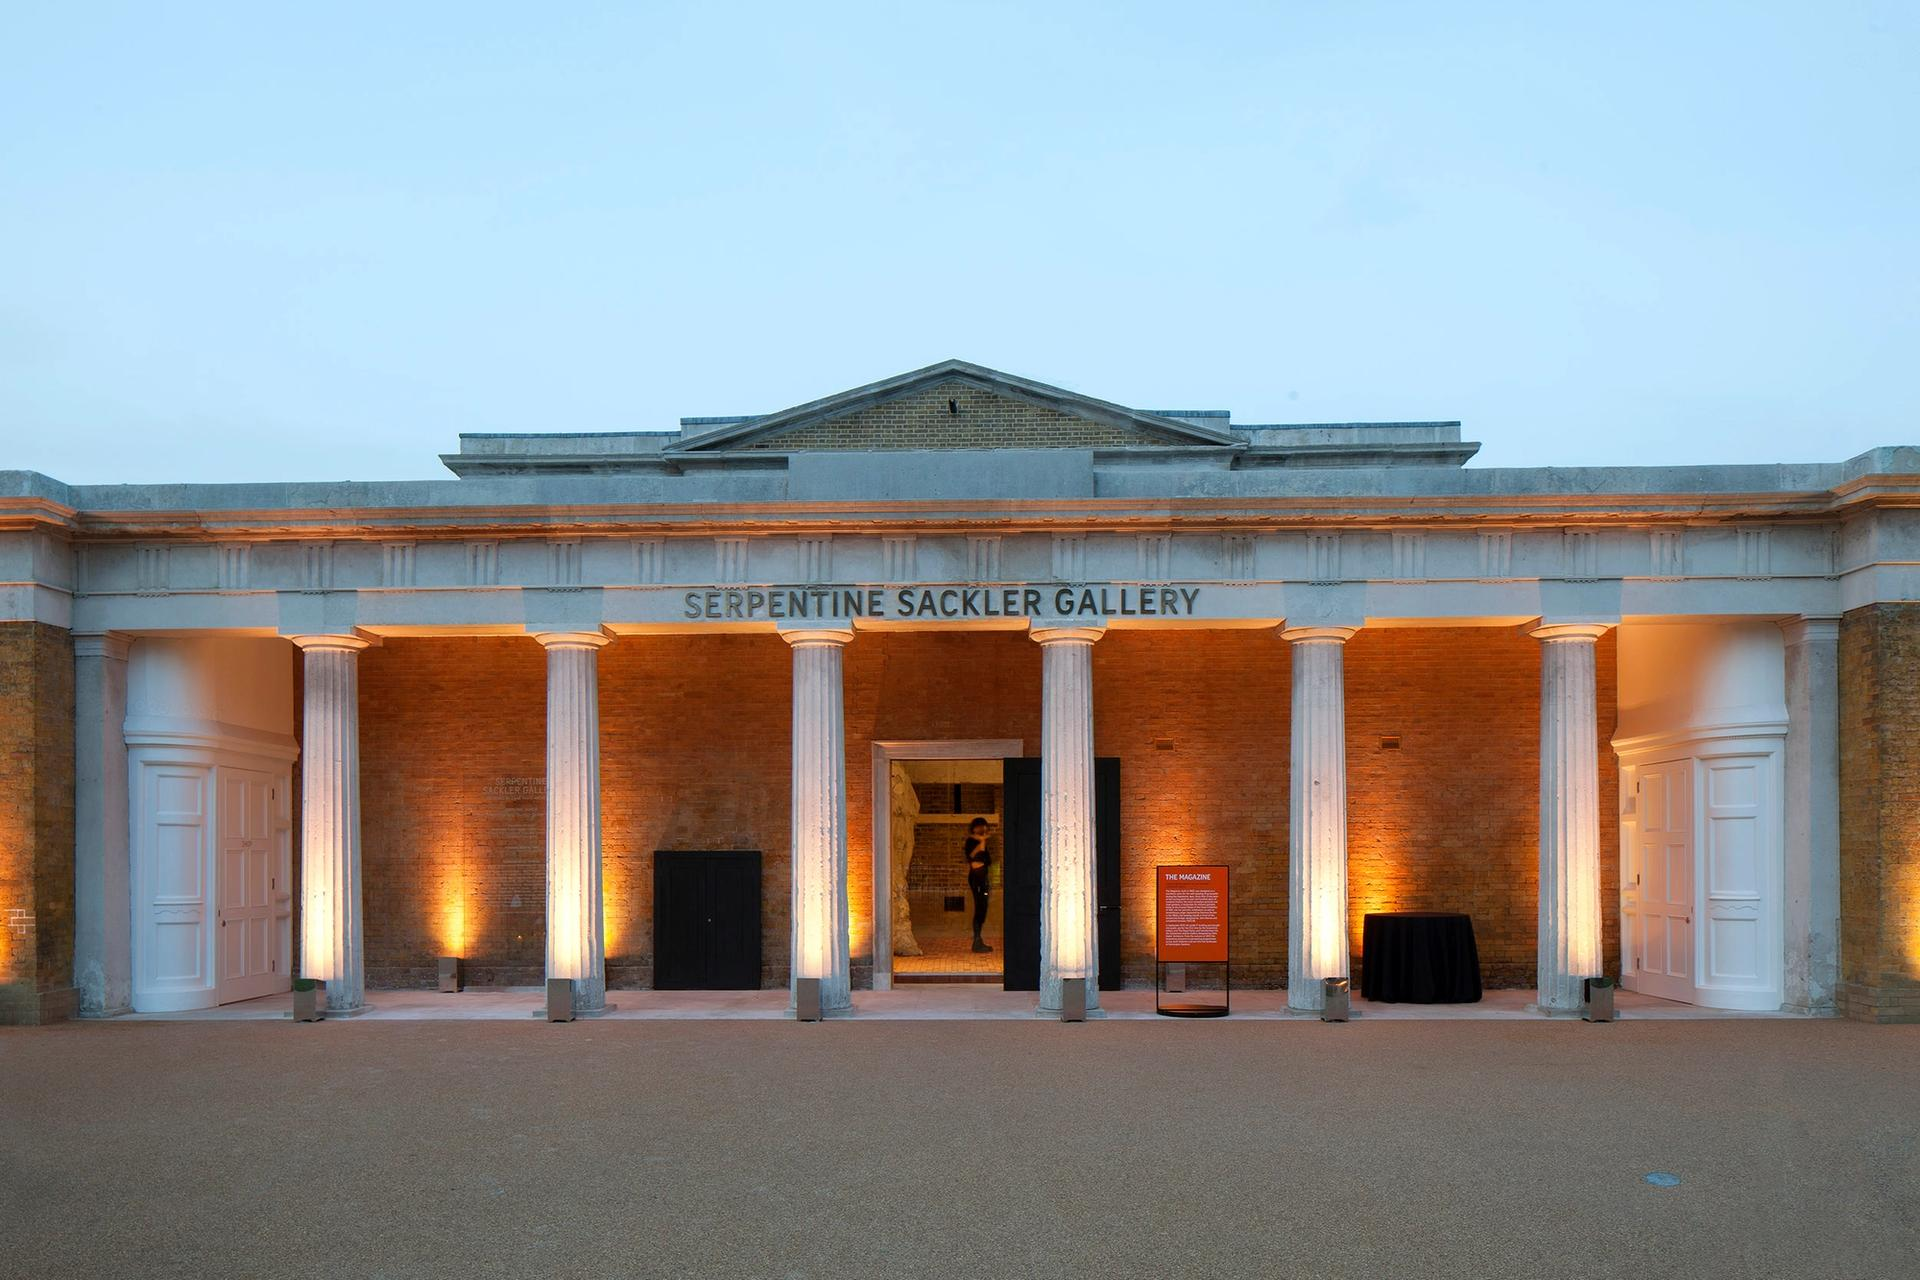 The Sackler name is still on the facade of the building © 2013 Luke Hayes